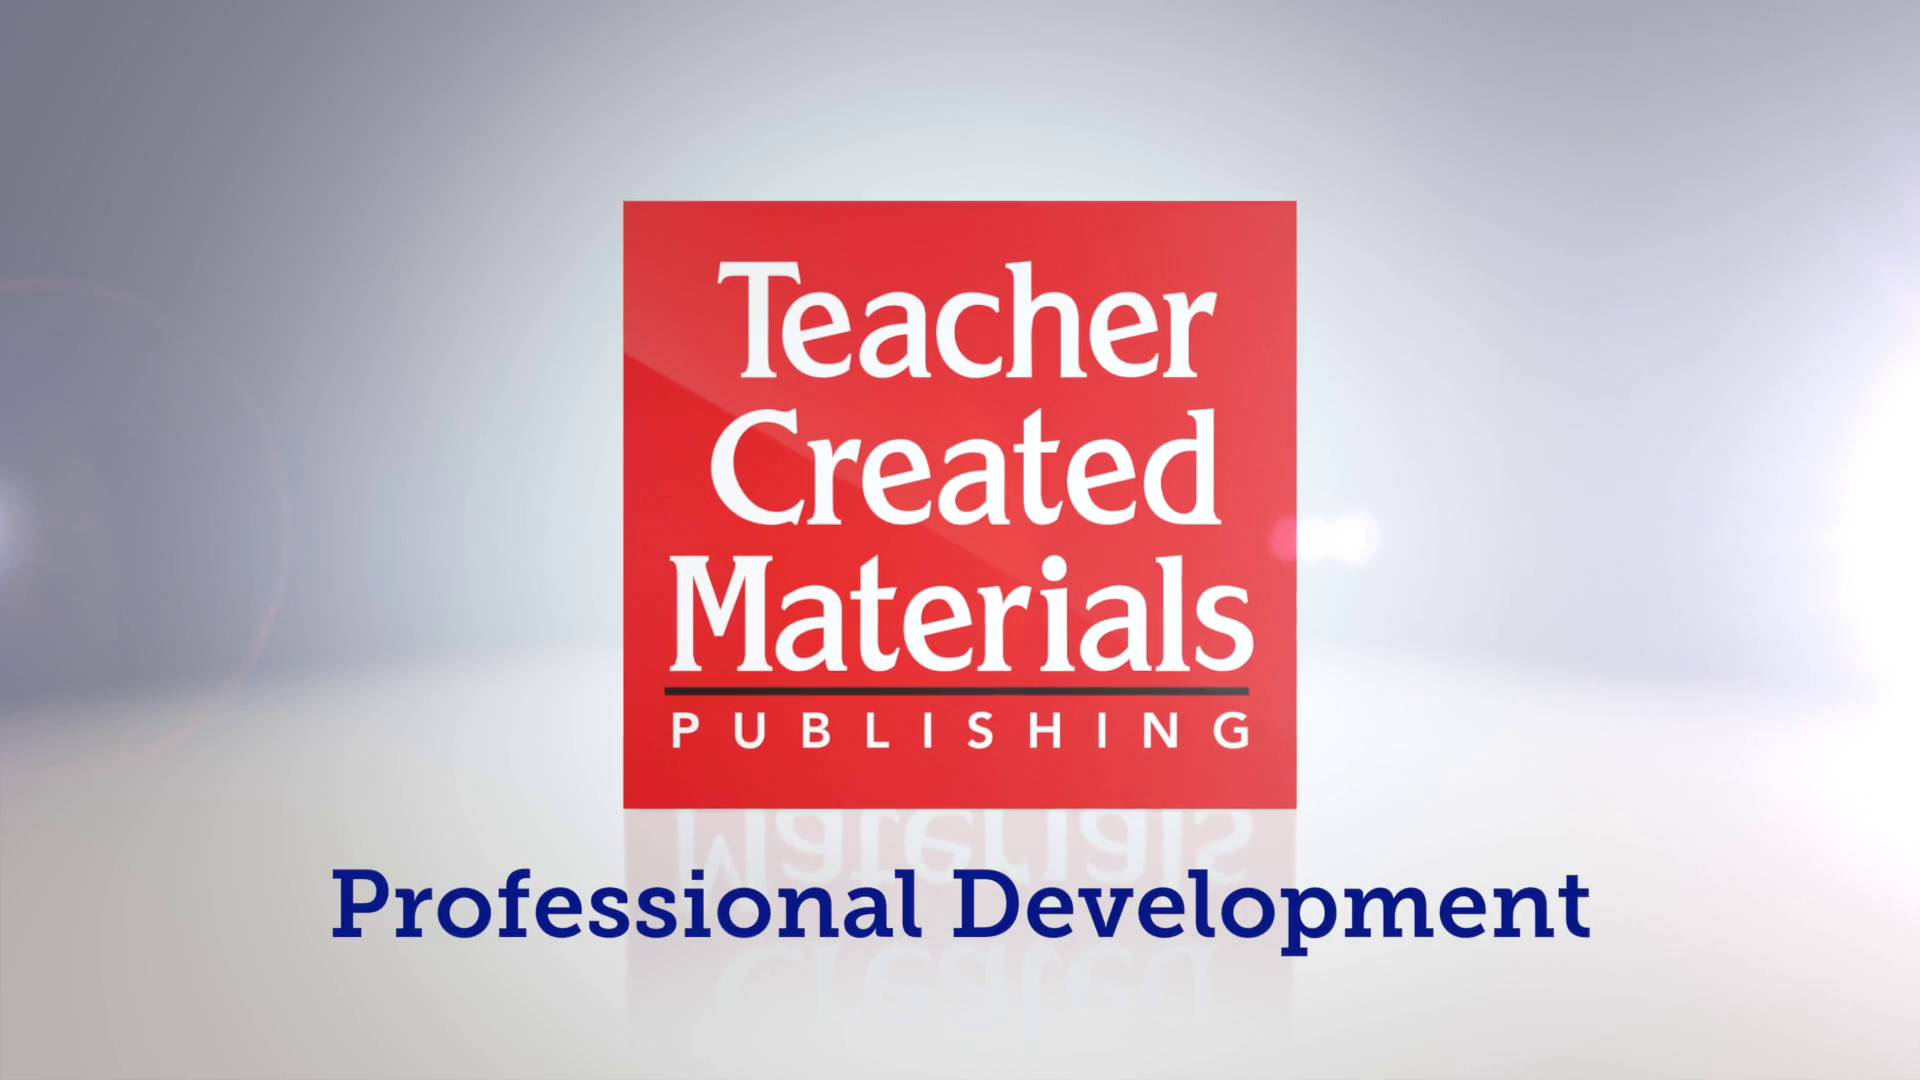 Worksheets Teacher Created Materials Inc Worksheets professional development resources from teacher created materials materials